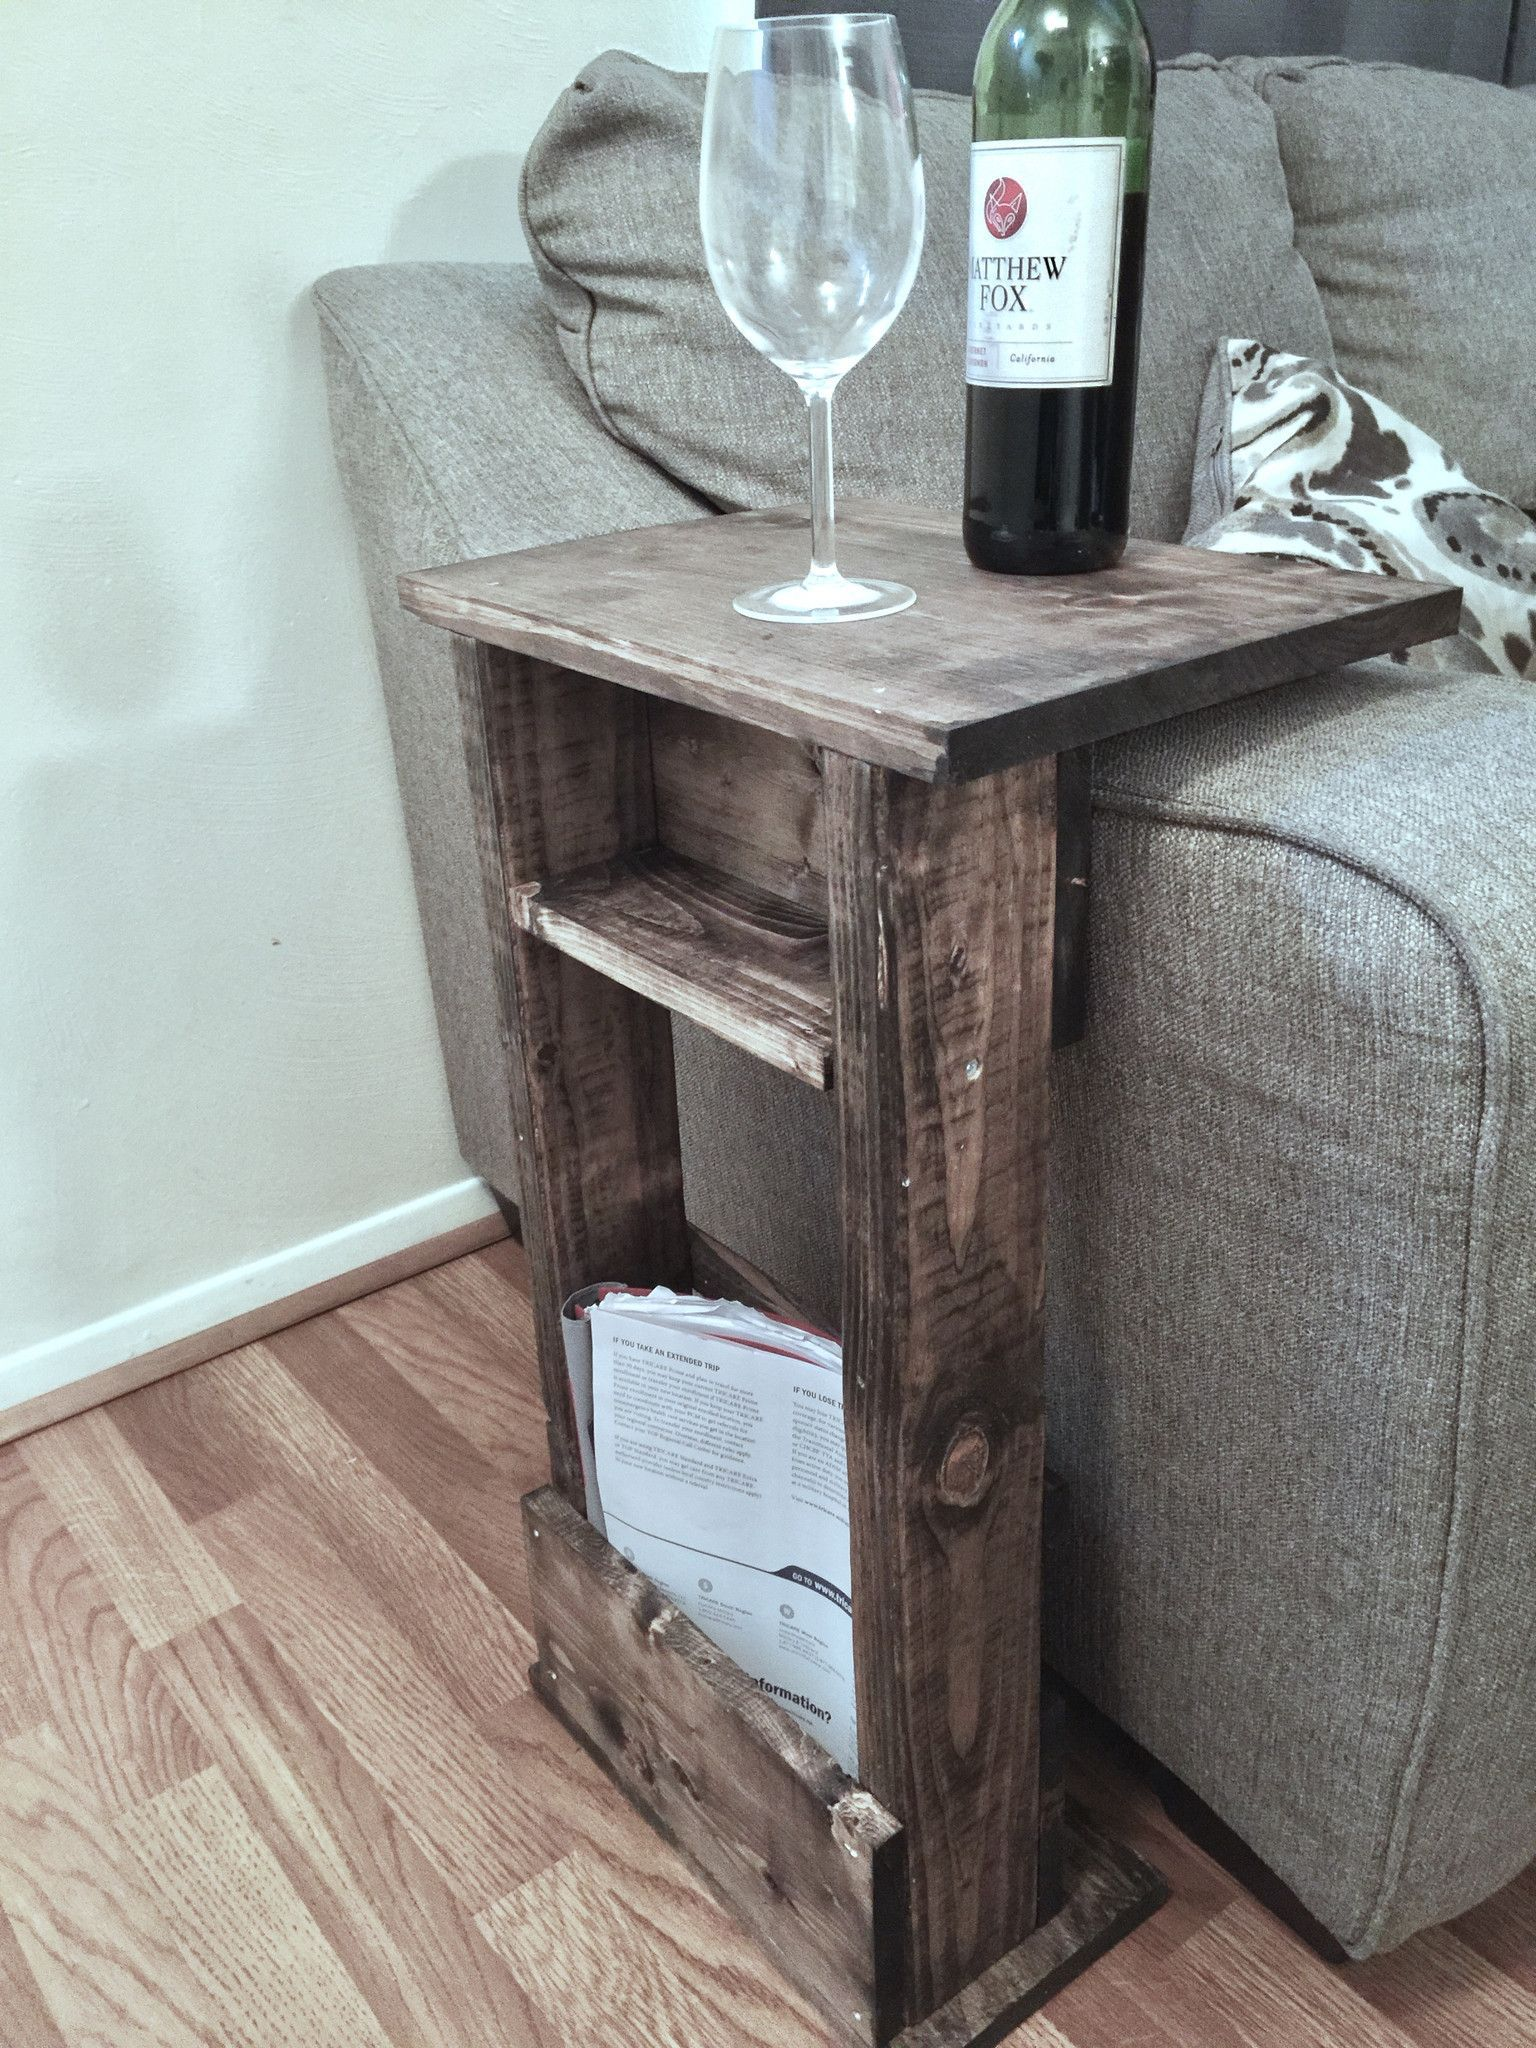 Handcrafted tray table stand with storage pocket it has been sanded down then stained and sealed  dark walnut finish wood sofa arm provide also rh pinterest